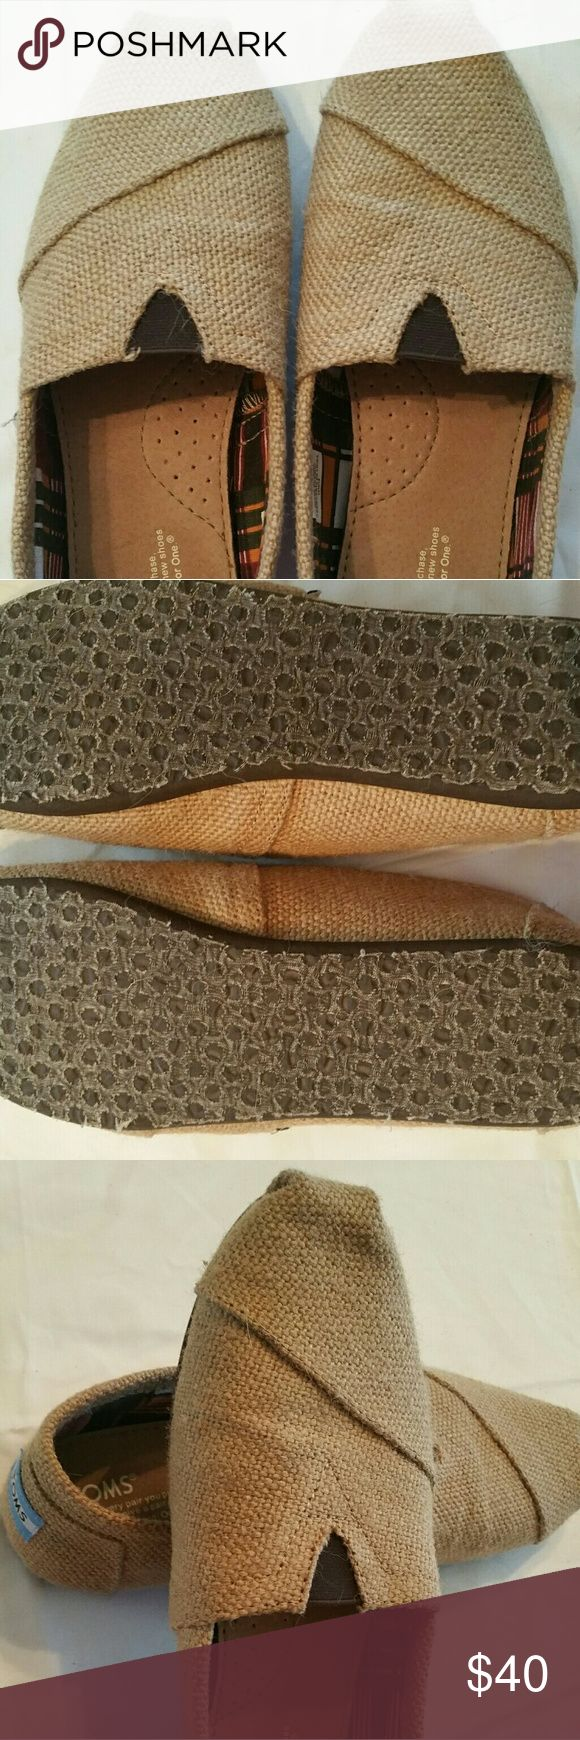 NIB Burlap Tom's Size 8.5 NIB Never worn. Burlap Tom's Great for Summer Toms Shoes Flats & Loafers